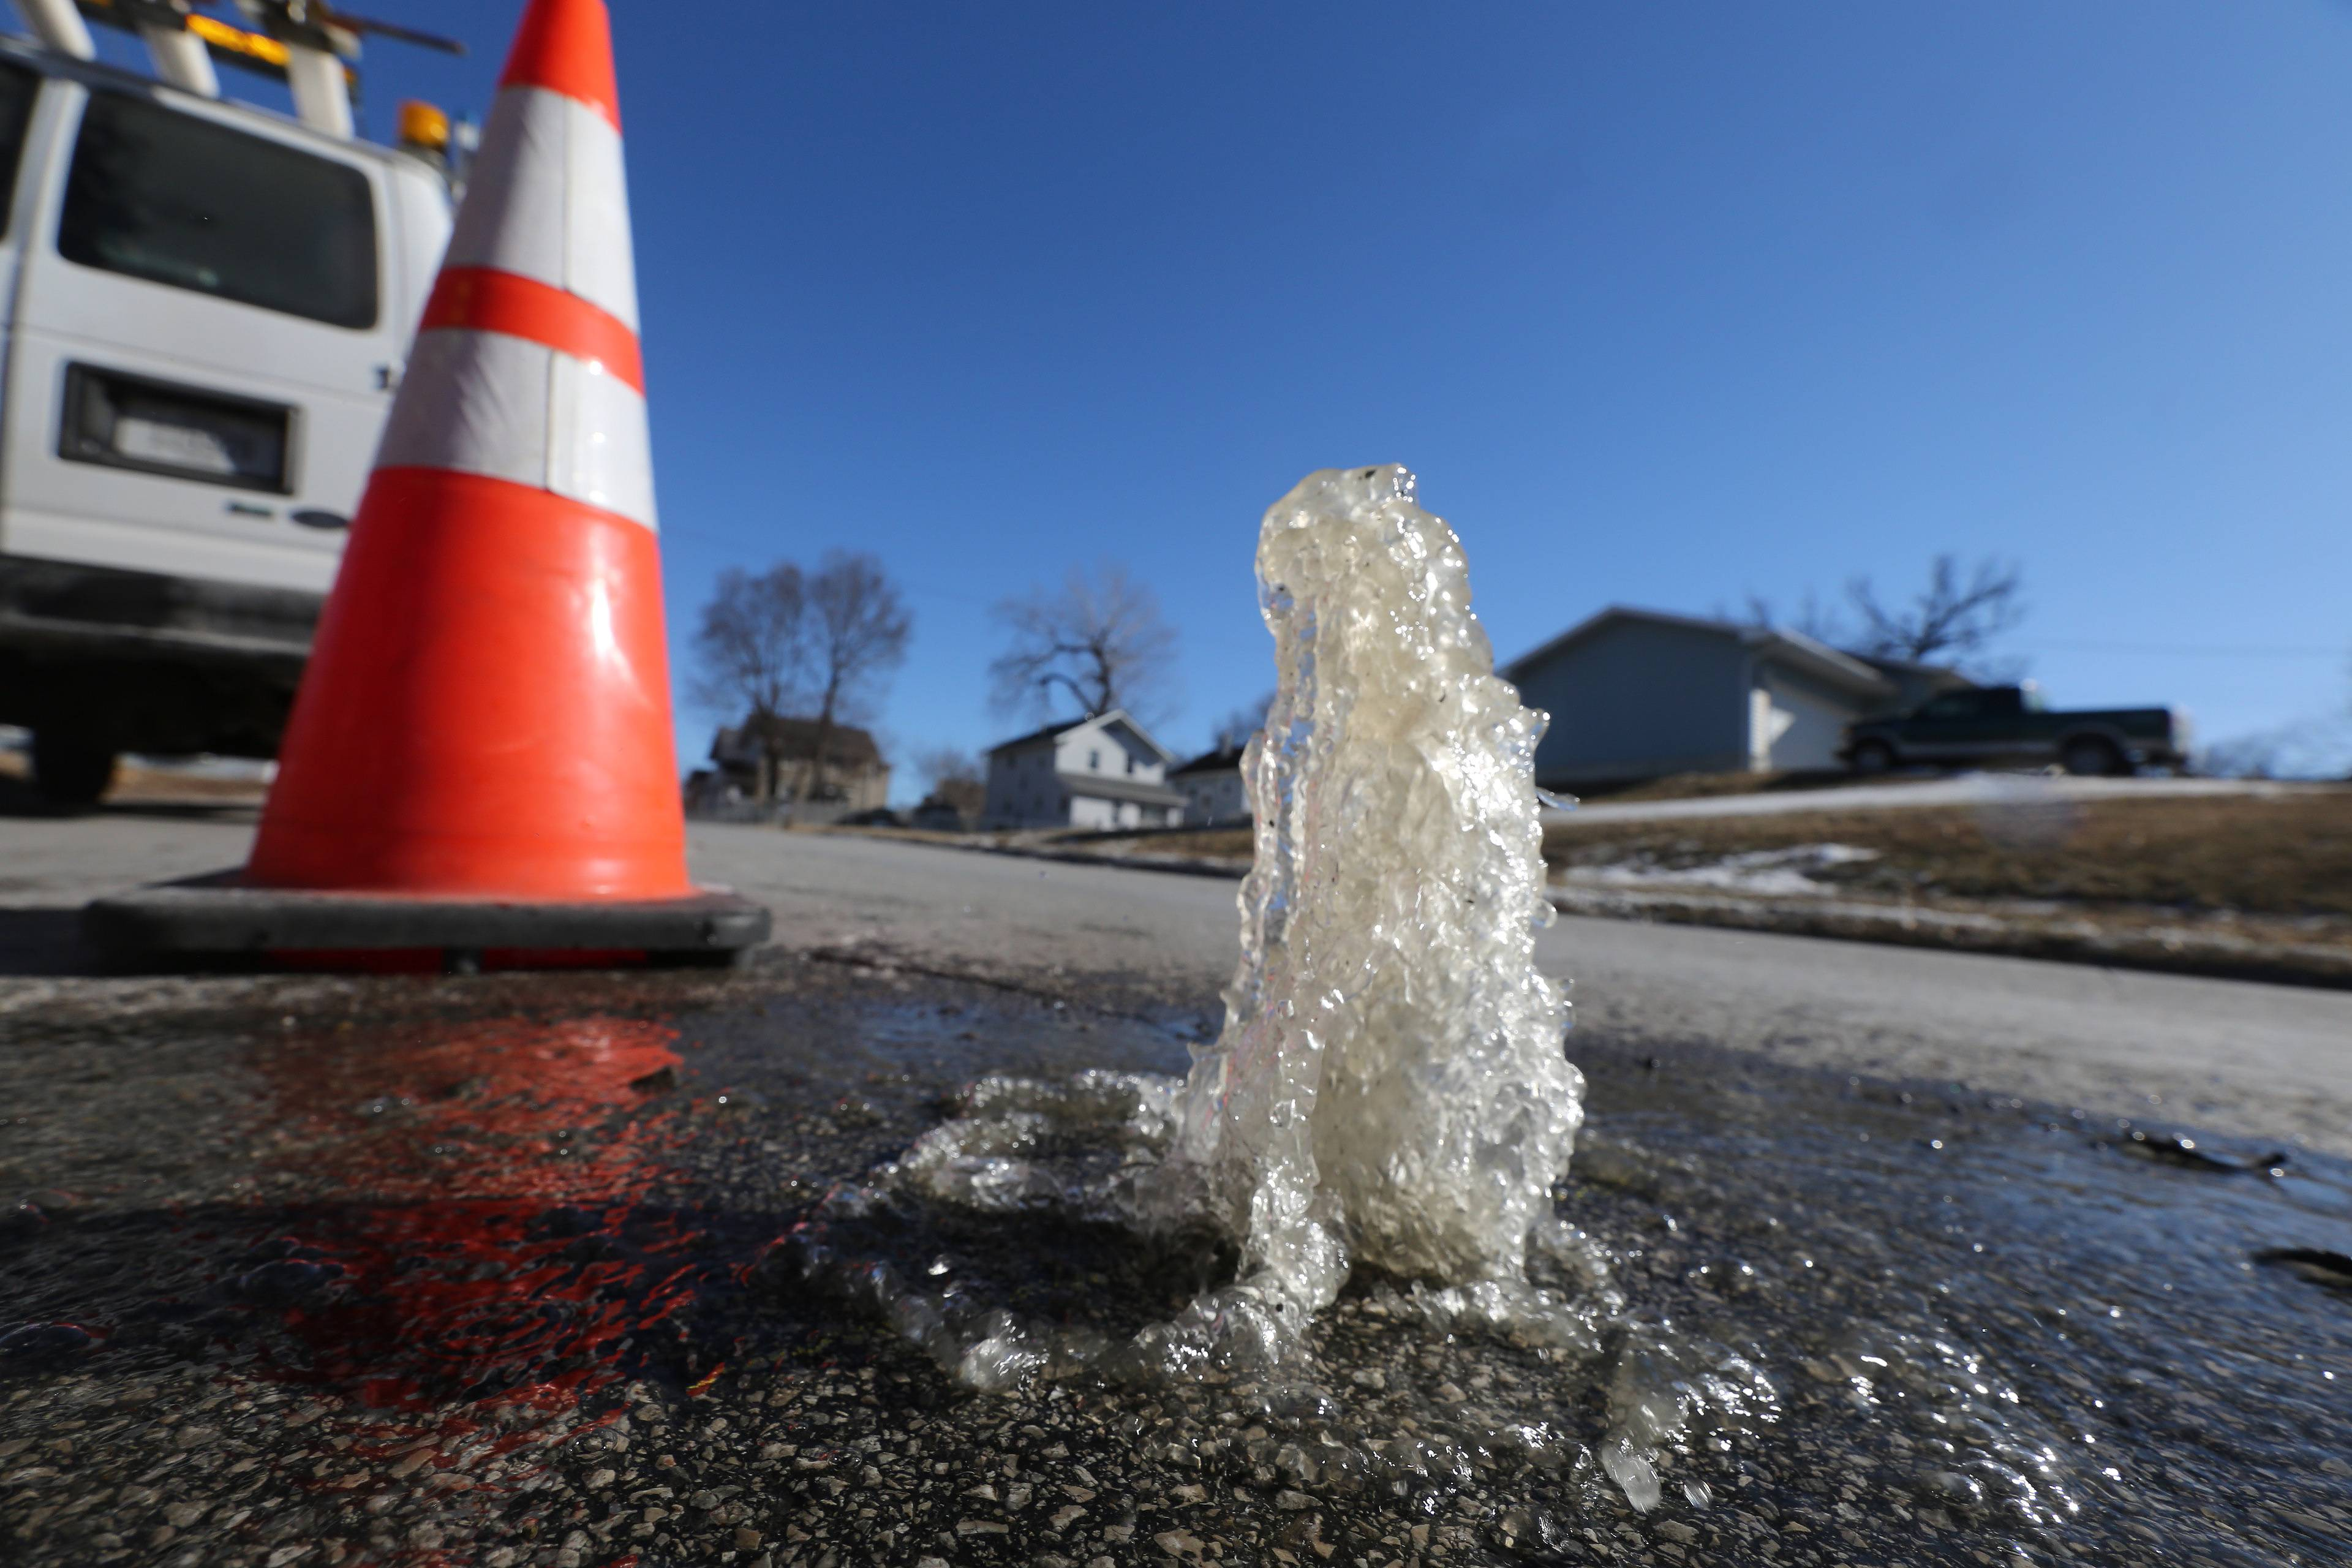 A broken water main spurts from a pilot hole dug to find the break in Des Moines. A Des Moines official said the city has never endured so many broken water mains in the 100-year history of its water utility.